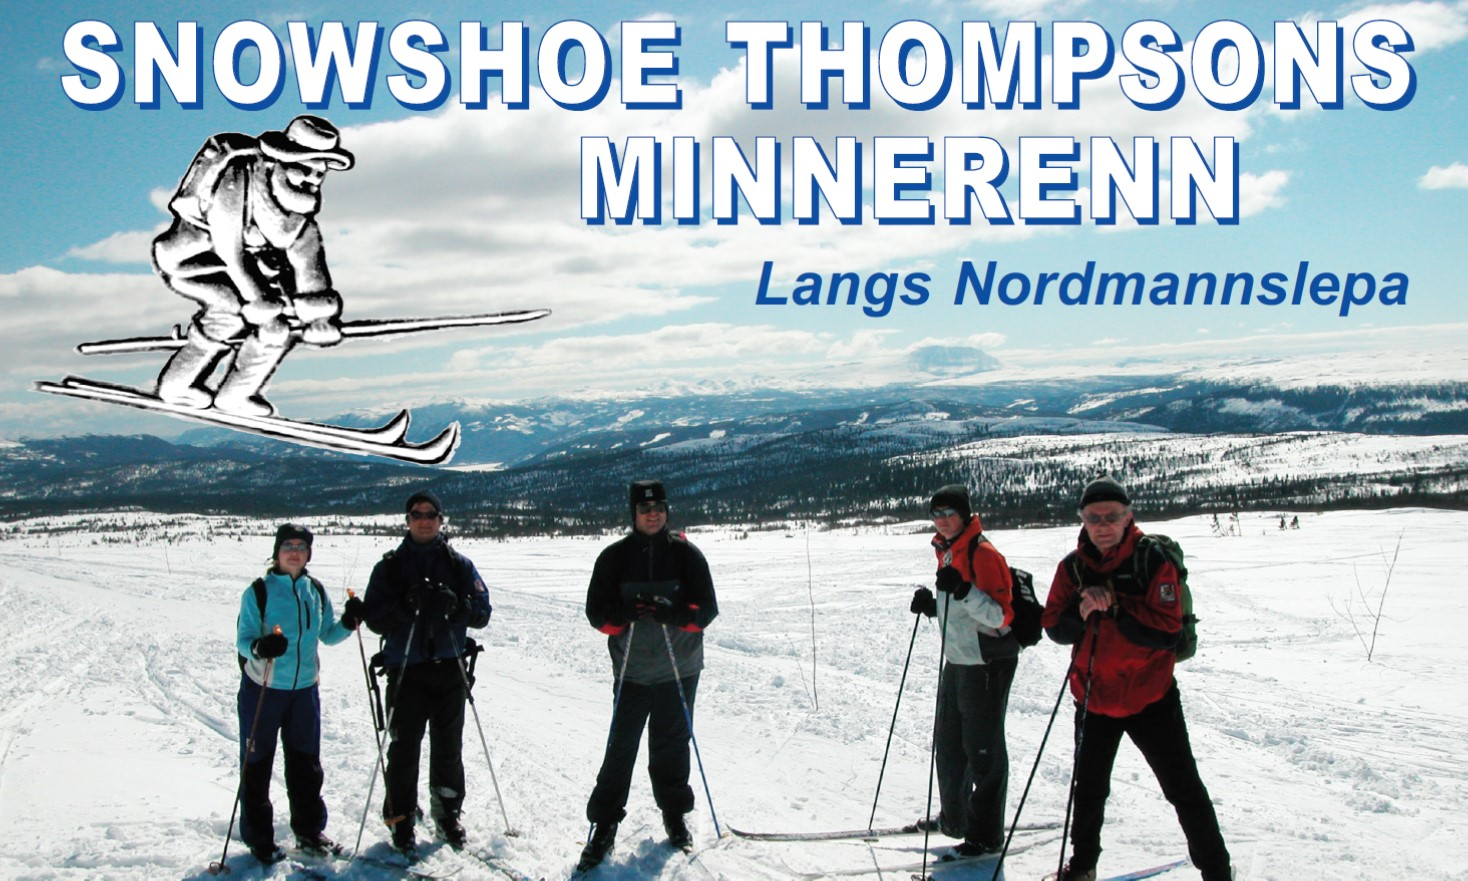 Snowshoe Thompsons  Minnerenn